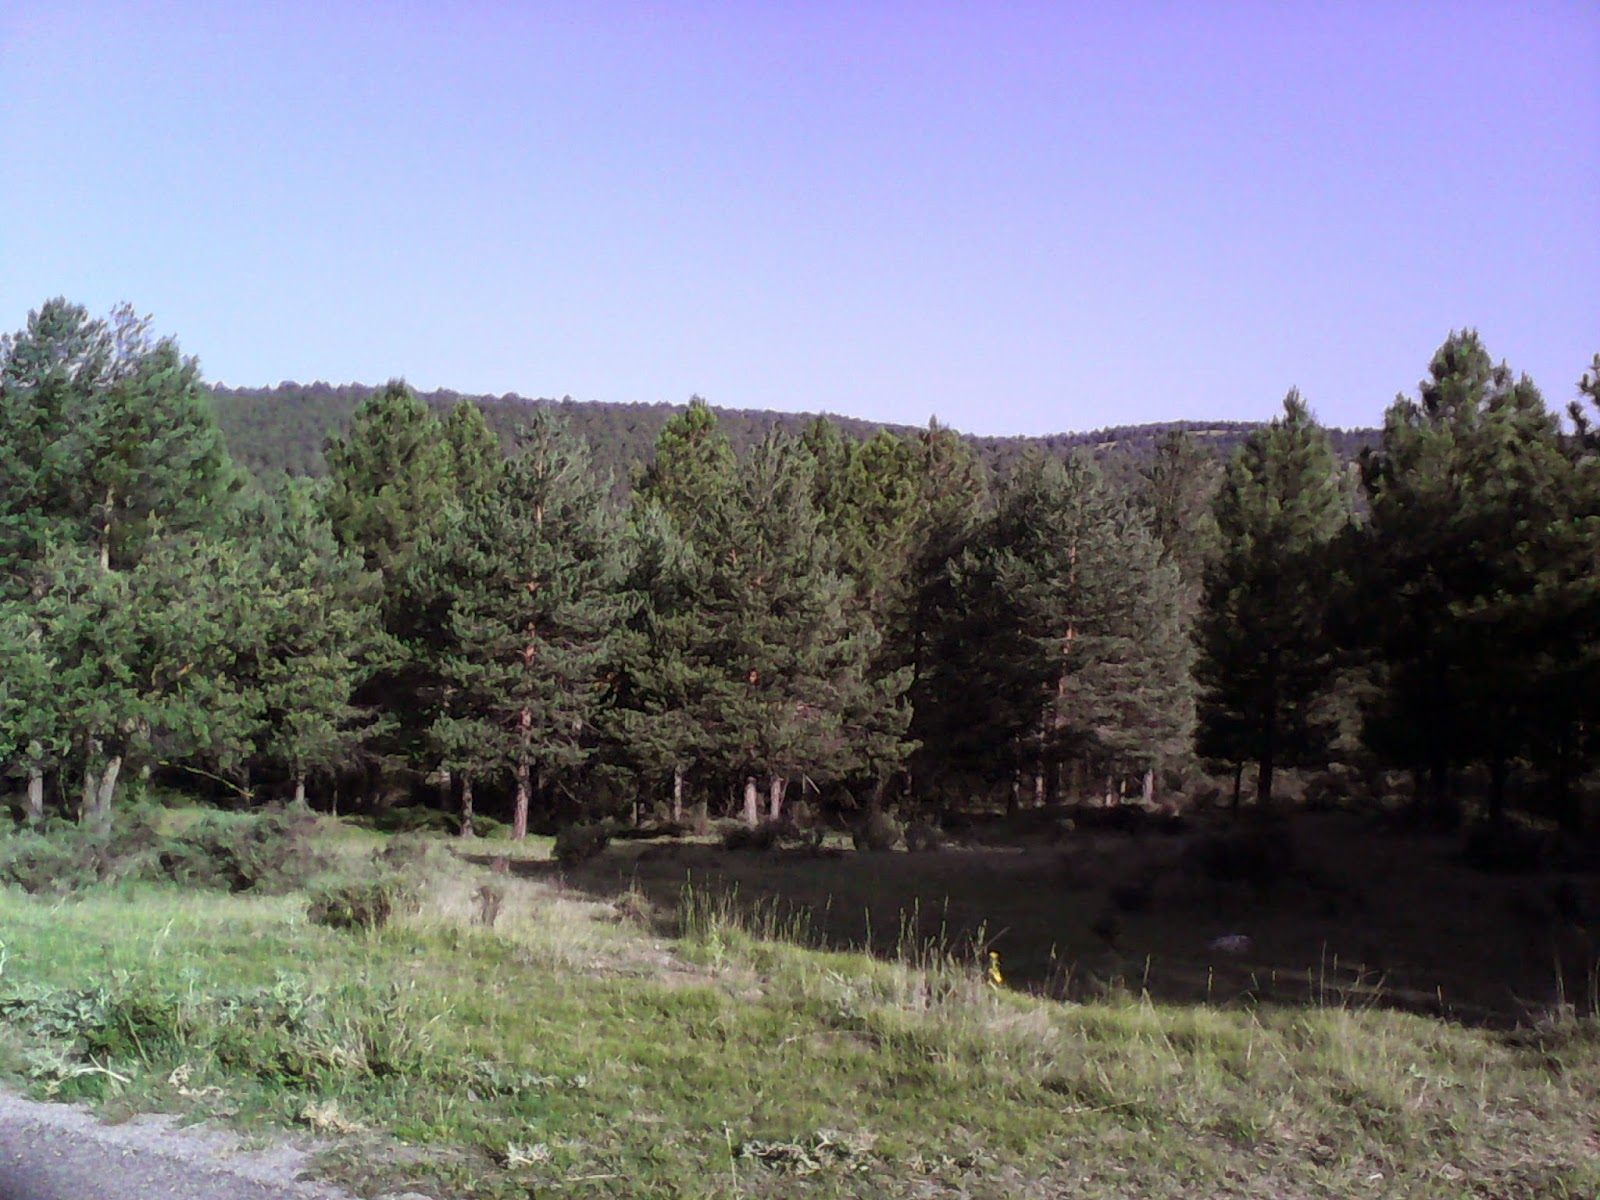 Bosque algarbe